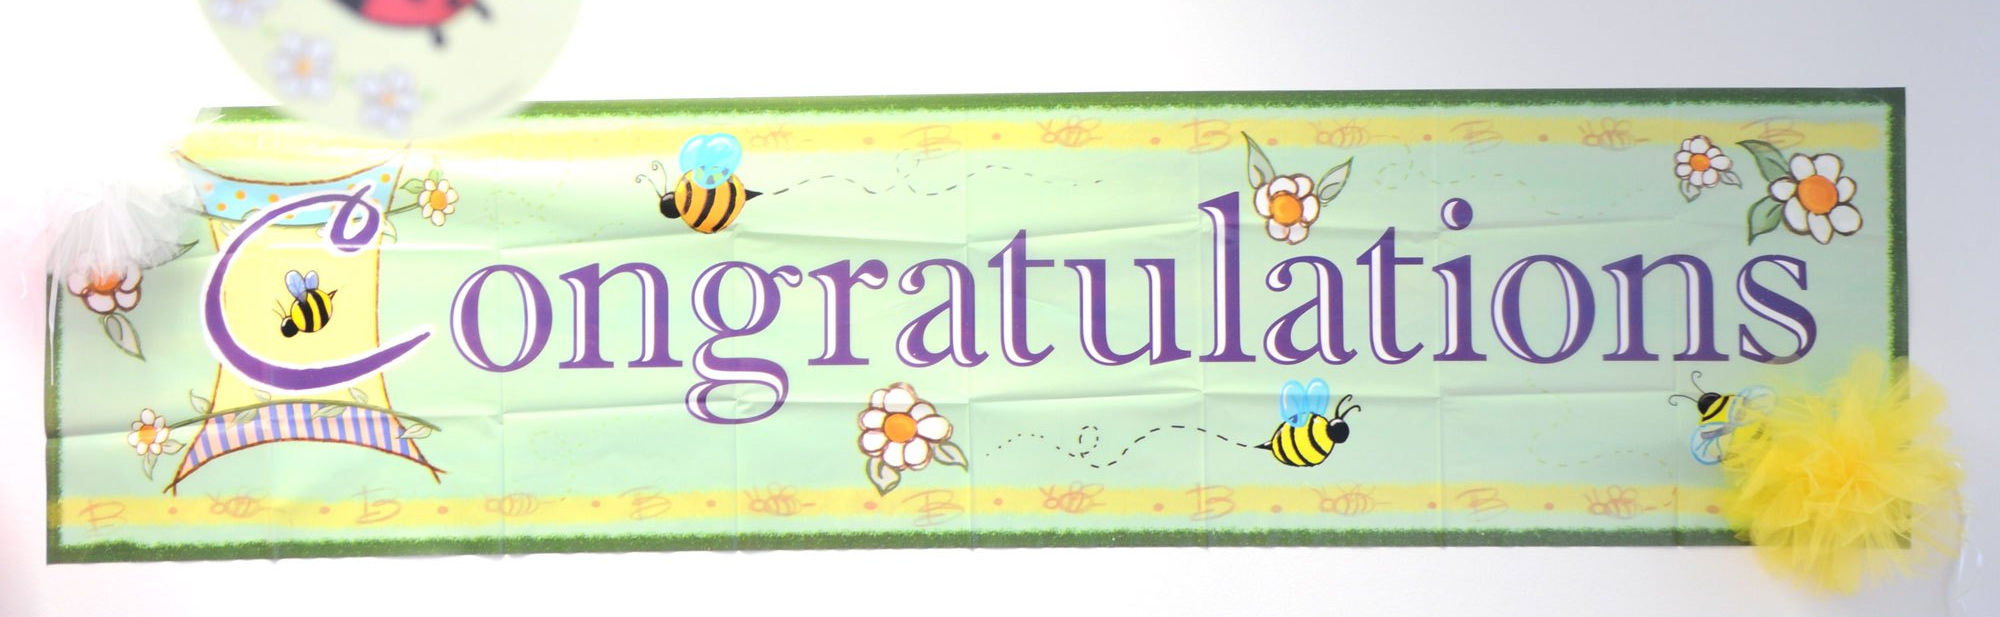 Baby-Shower-Congratulations-Sign.jpg